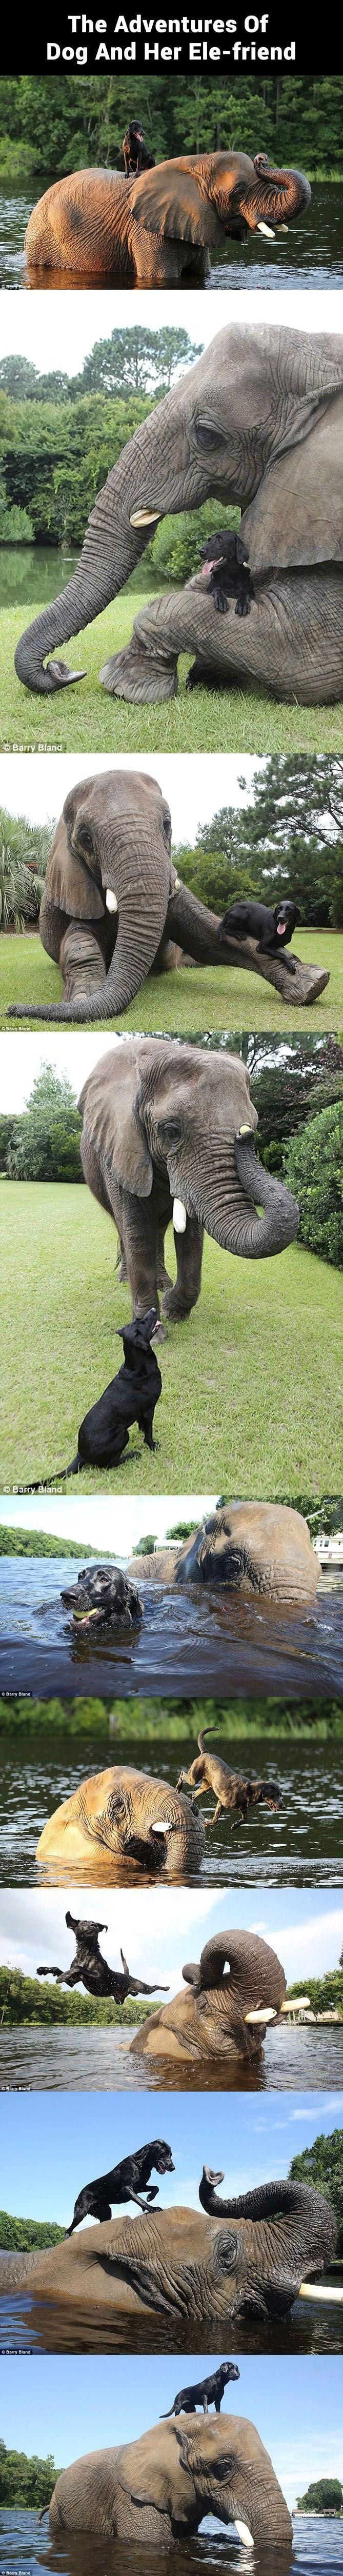 Elephant plays fetch with her puppy pal..